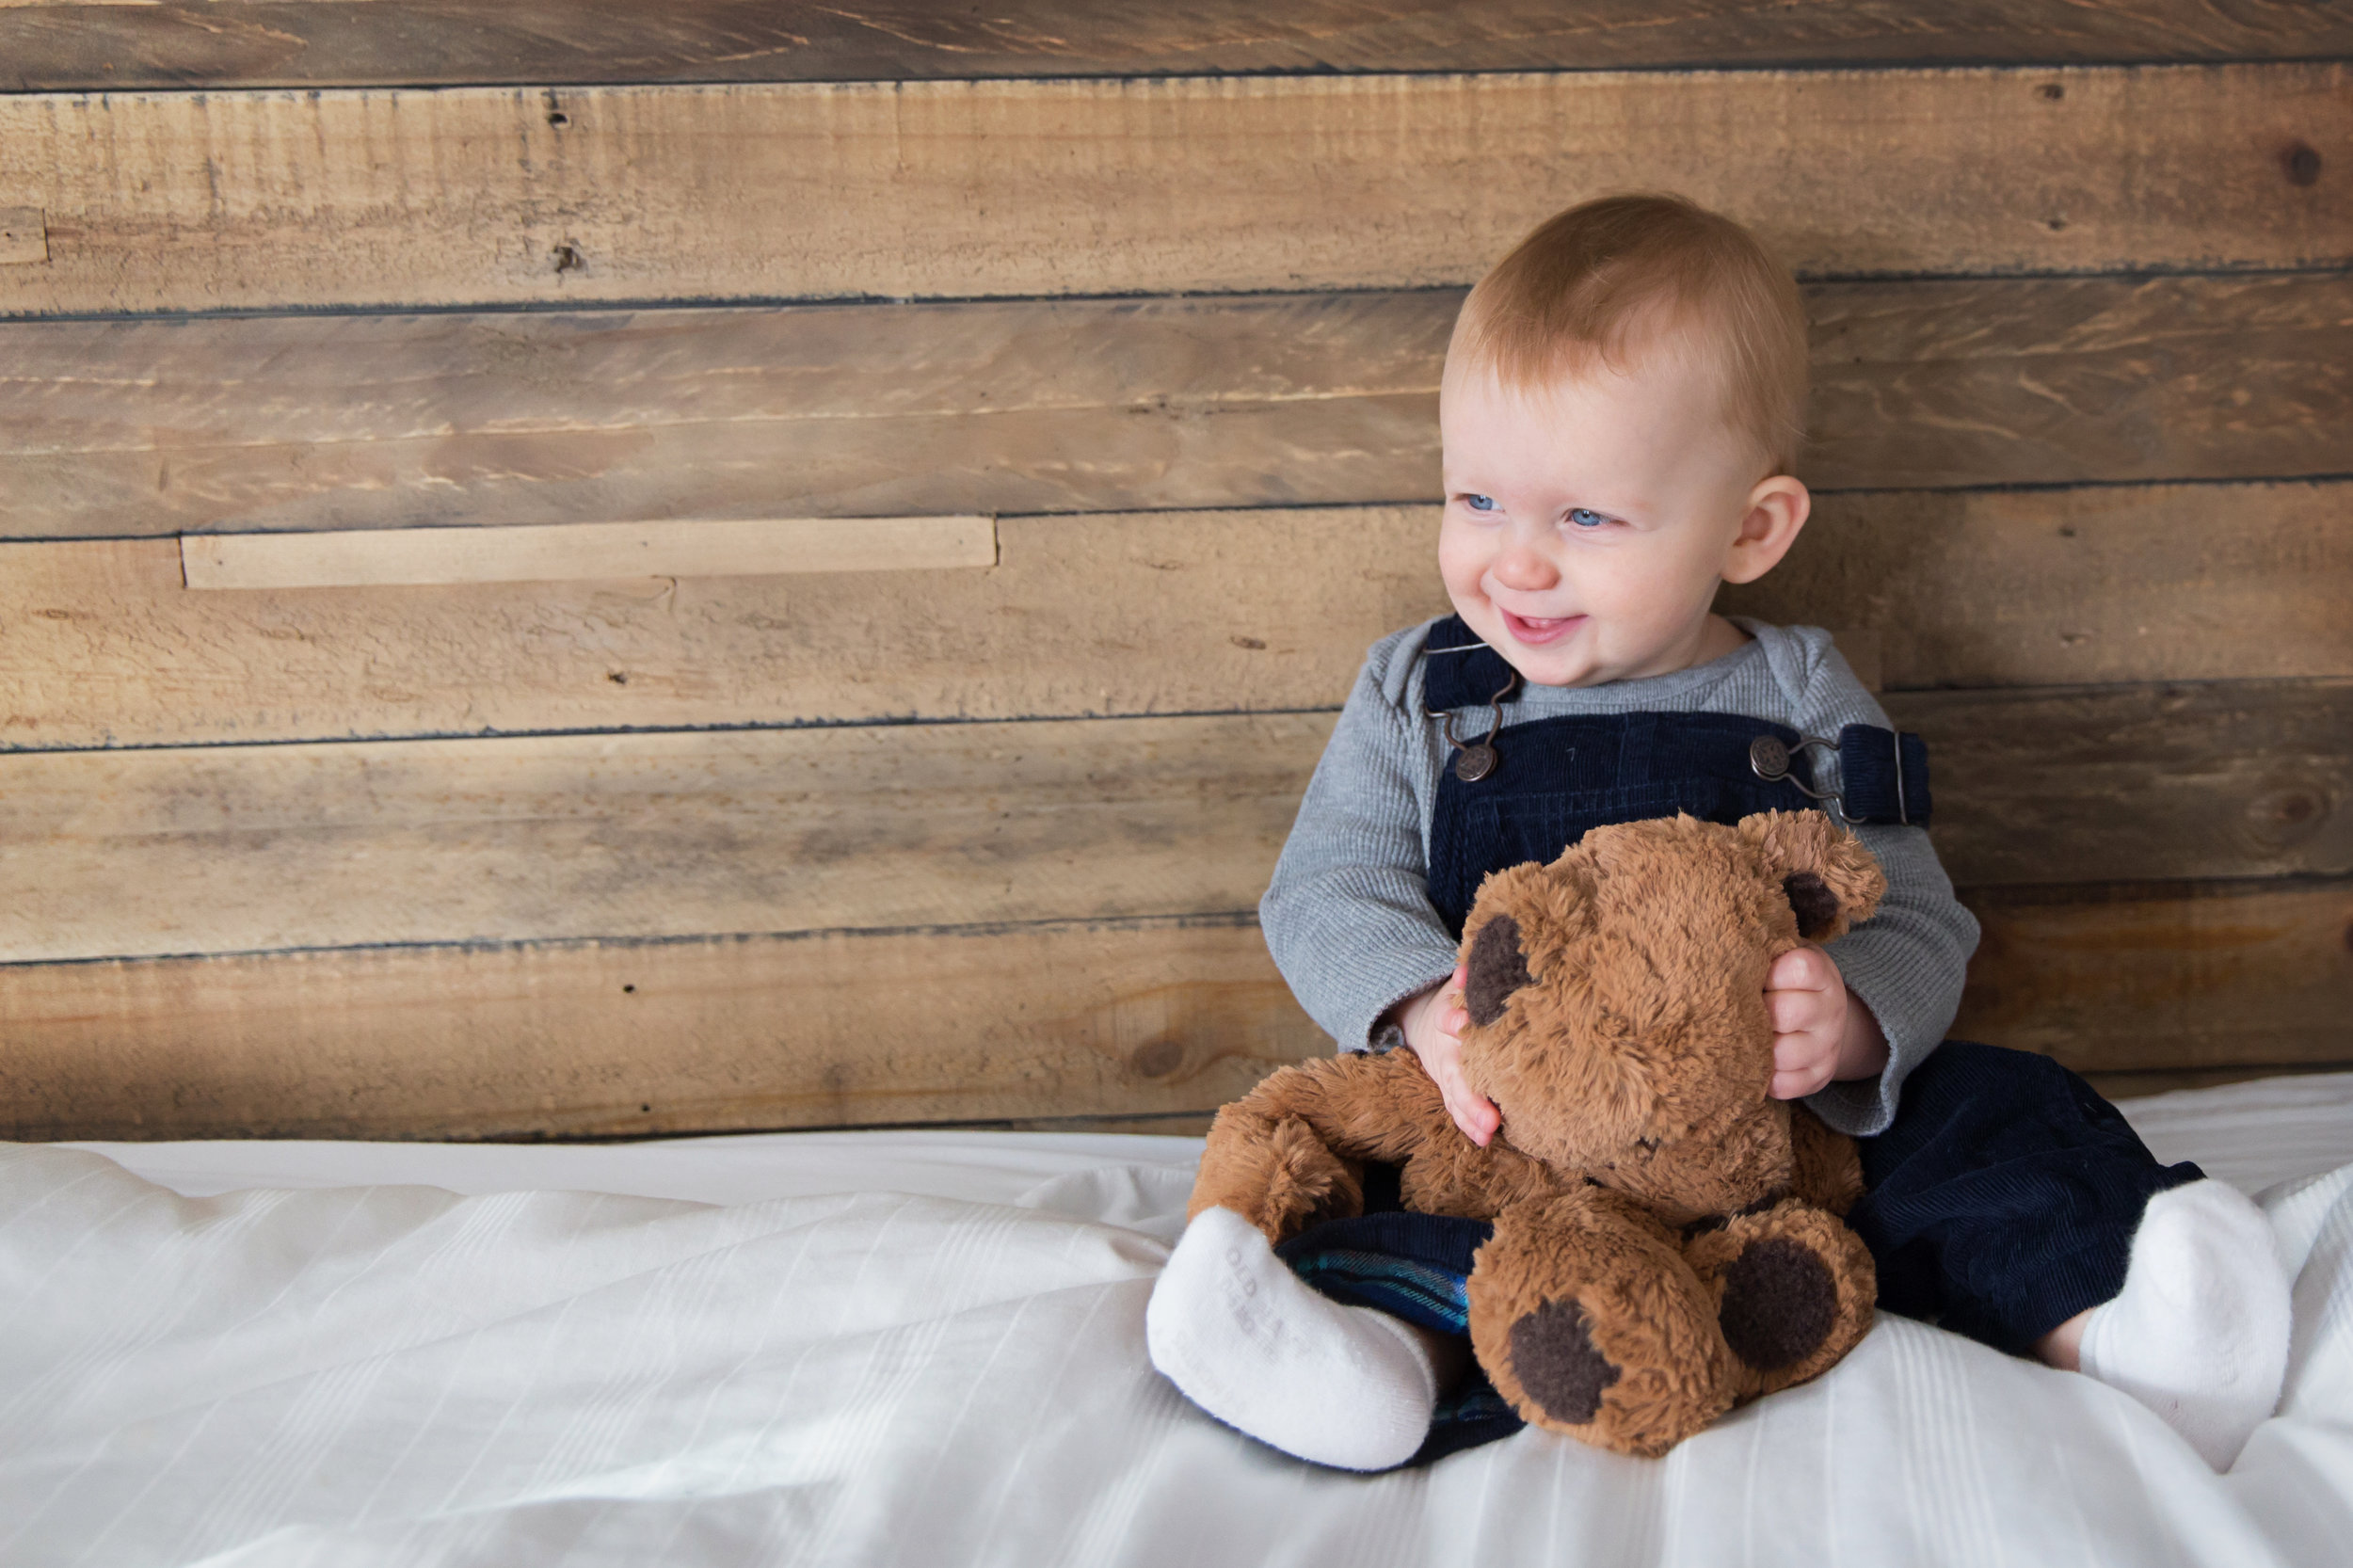 Baby boy sitting on a bed, holding his bear and smiling. Calgary lifestyle photographer. Milashka Photography